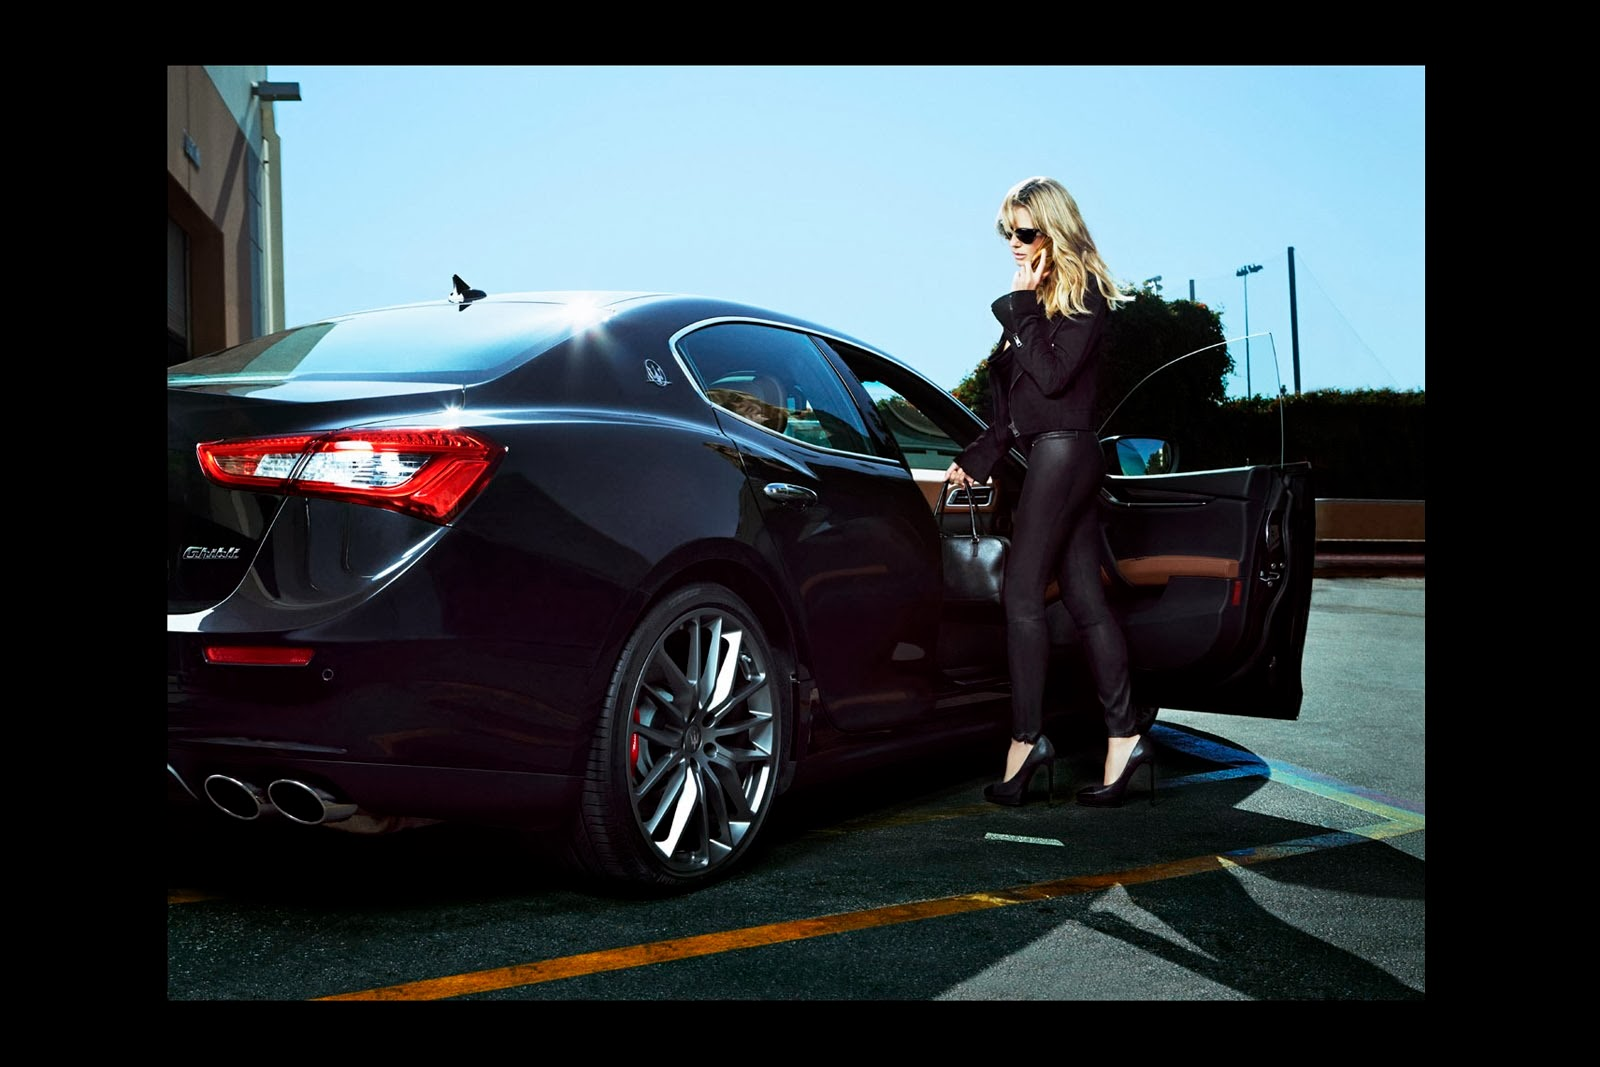 Heidi Klum with Maserati for Sports Illustrated